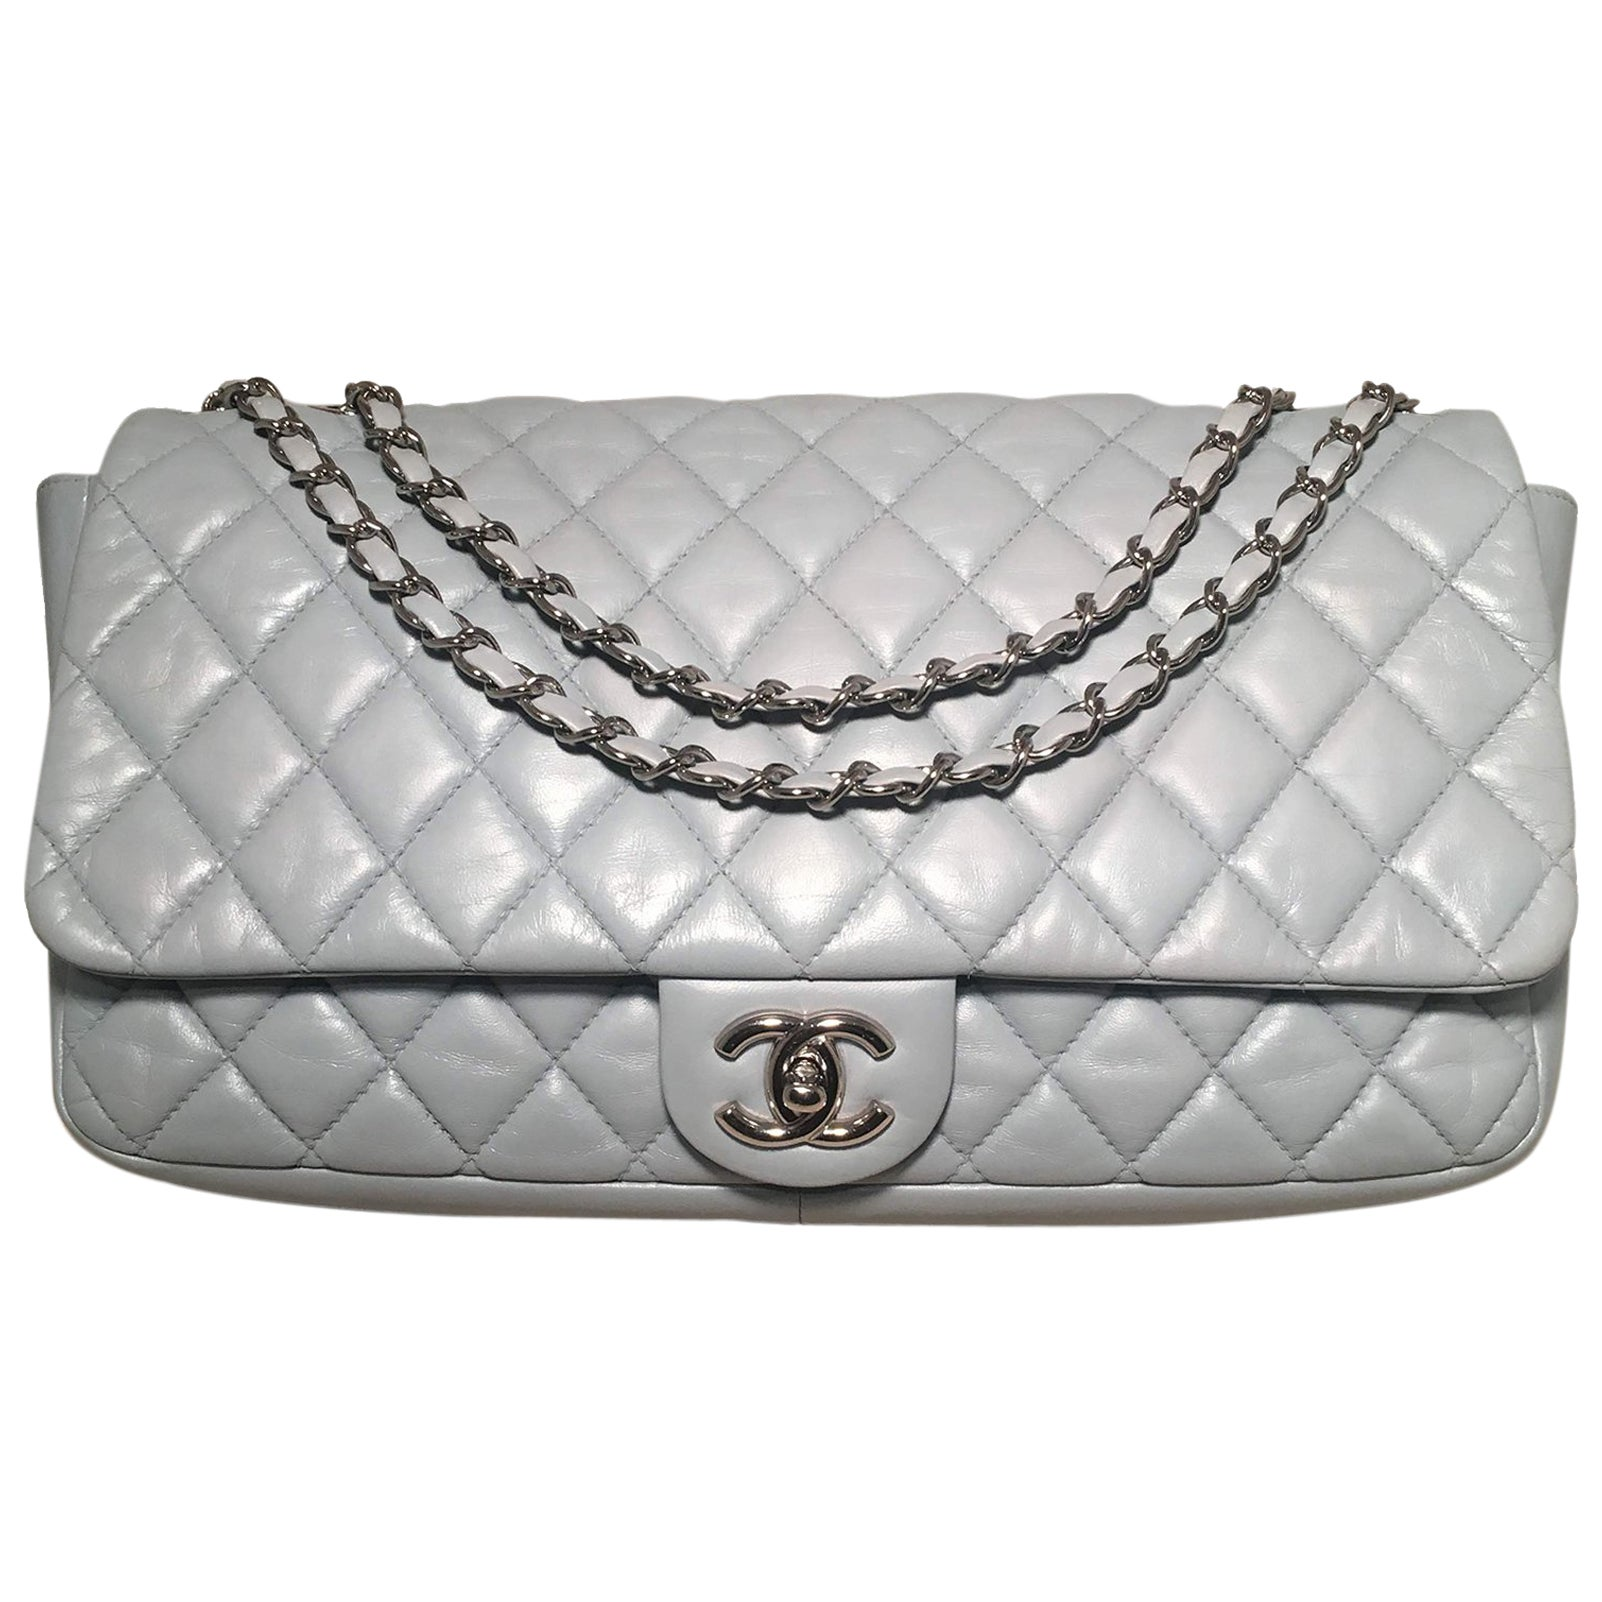 e5bd4174fb67 Chanel Light Blue Quilted Leather XL Maxi Classic Flap Shoulder Bag For  Sale at 1stdibs